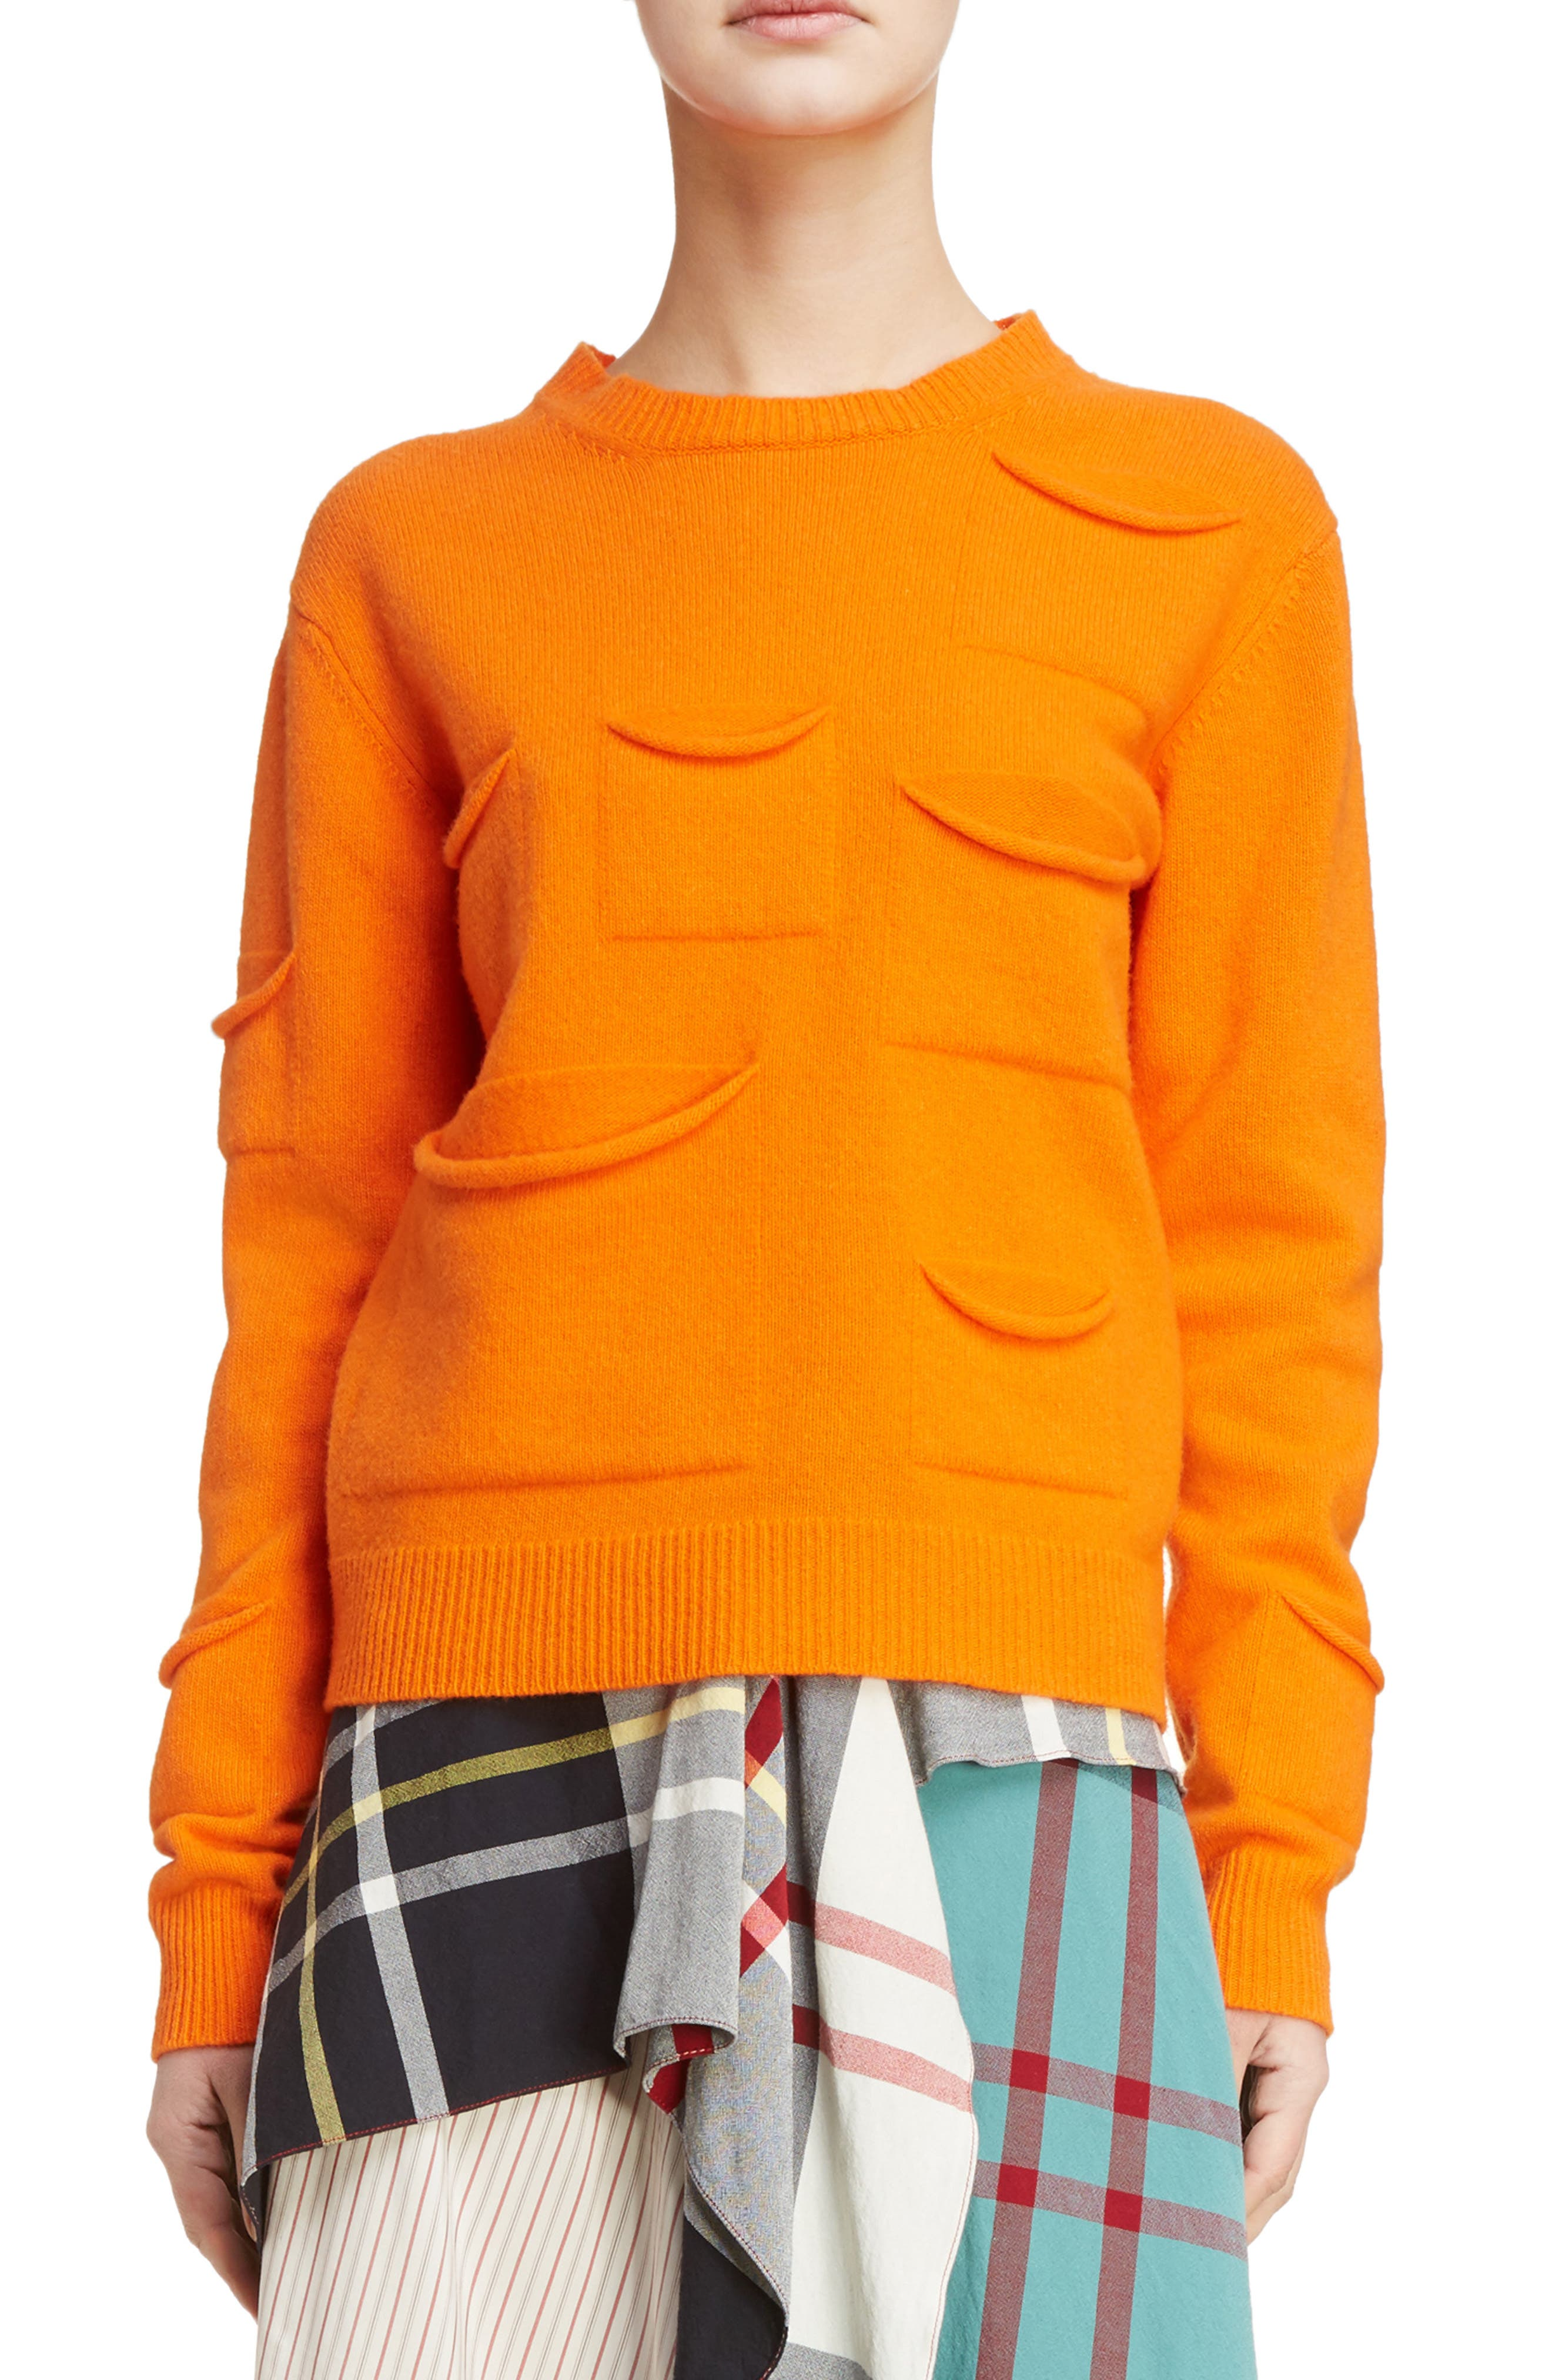 J.W.ANDERSON Multi Pocket Crewneck Sweater,                             Main thumbnail 1, color,                             Tangerine